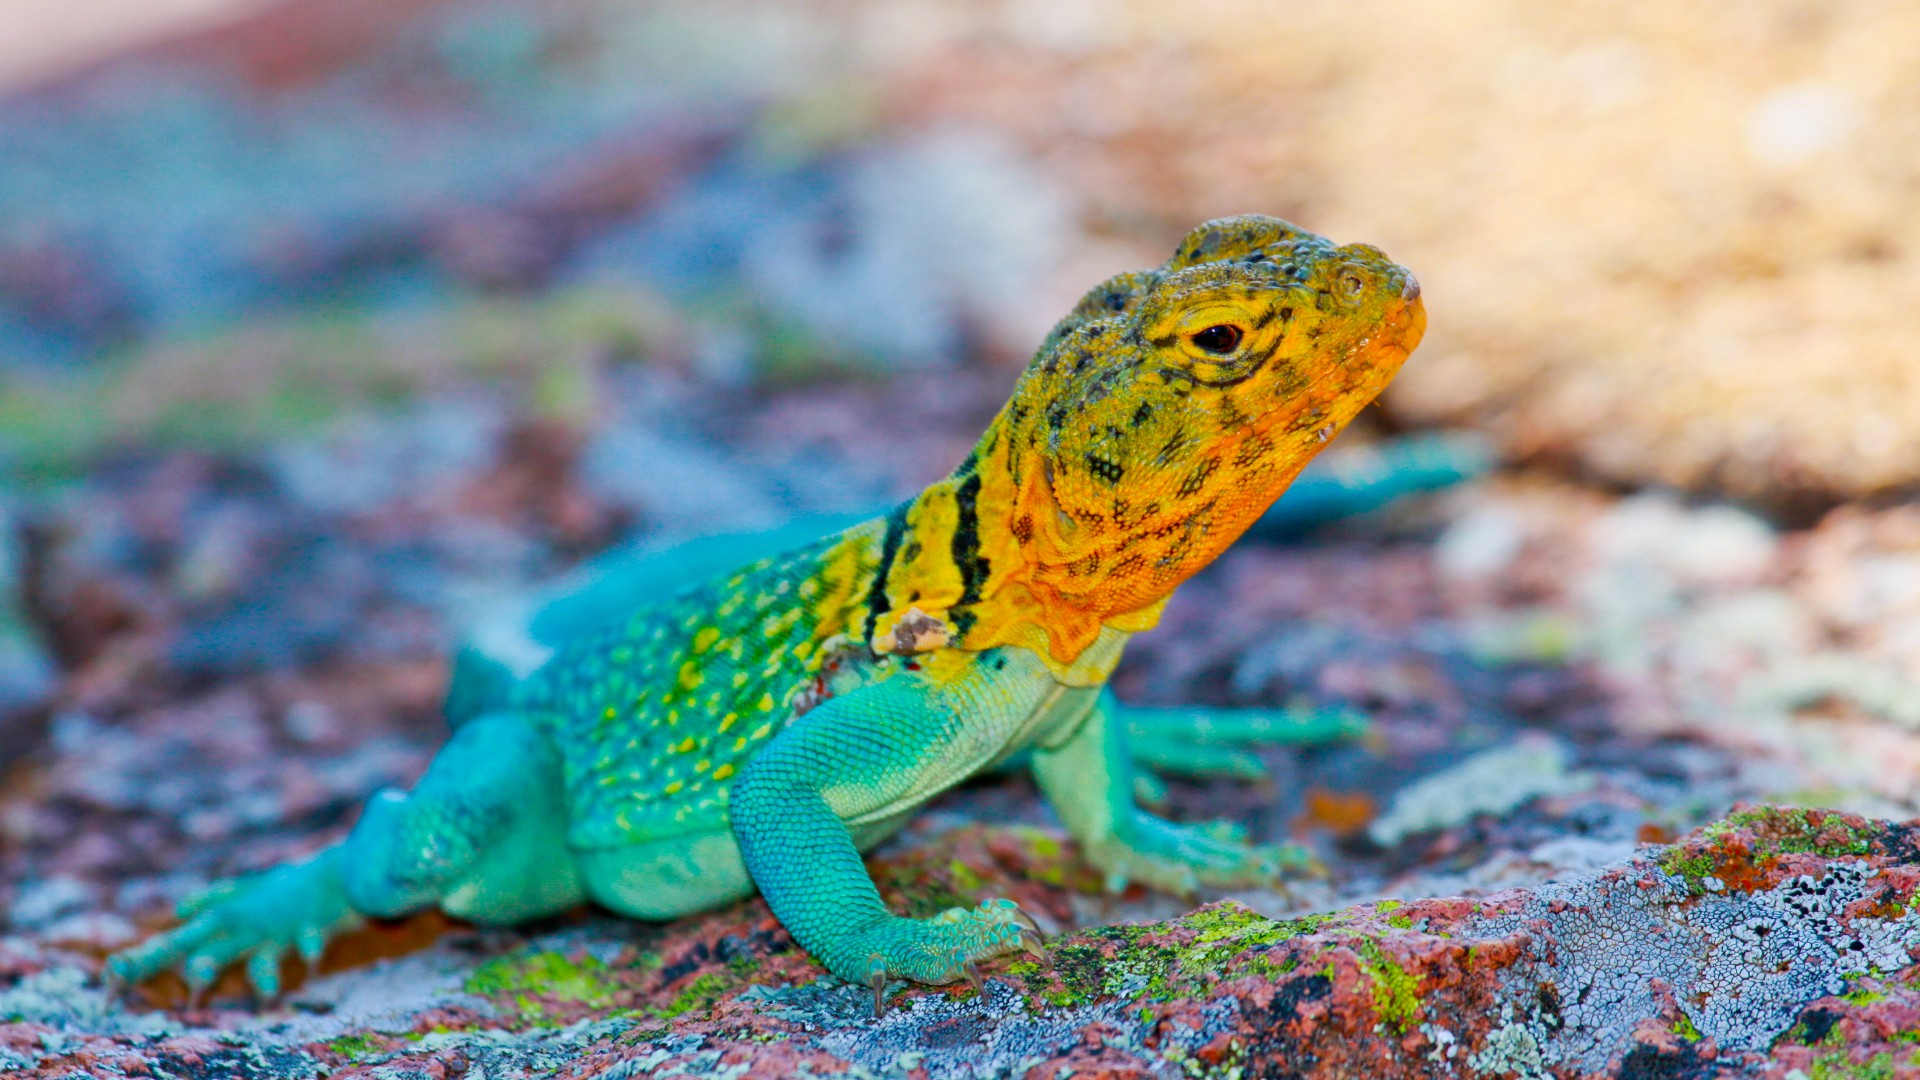 Crotaphytus collaris, Mexico, Lizard, colorful, stone, nature, tourism (horizontal)